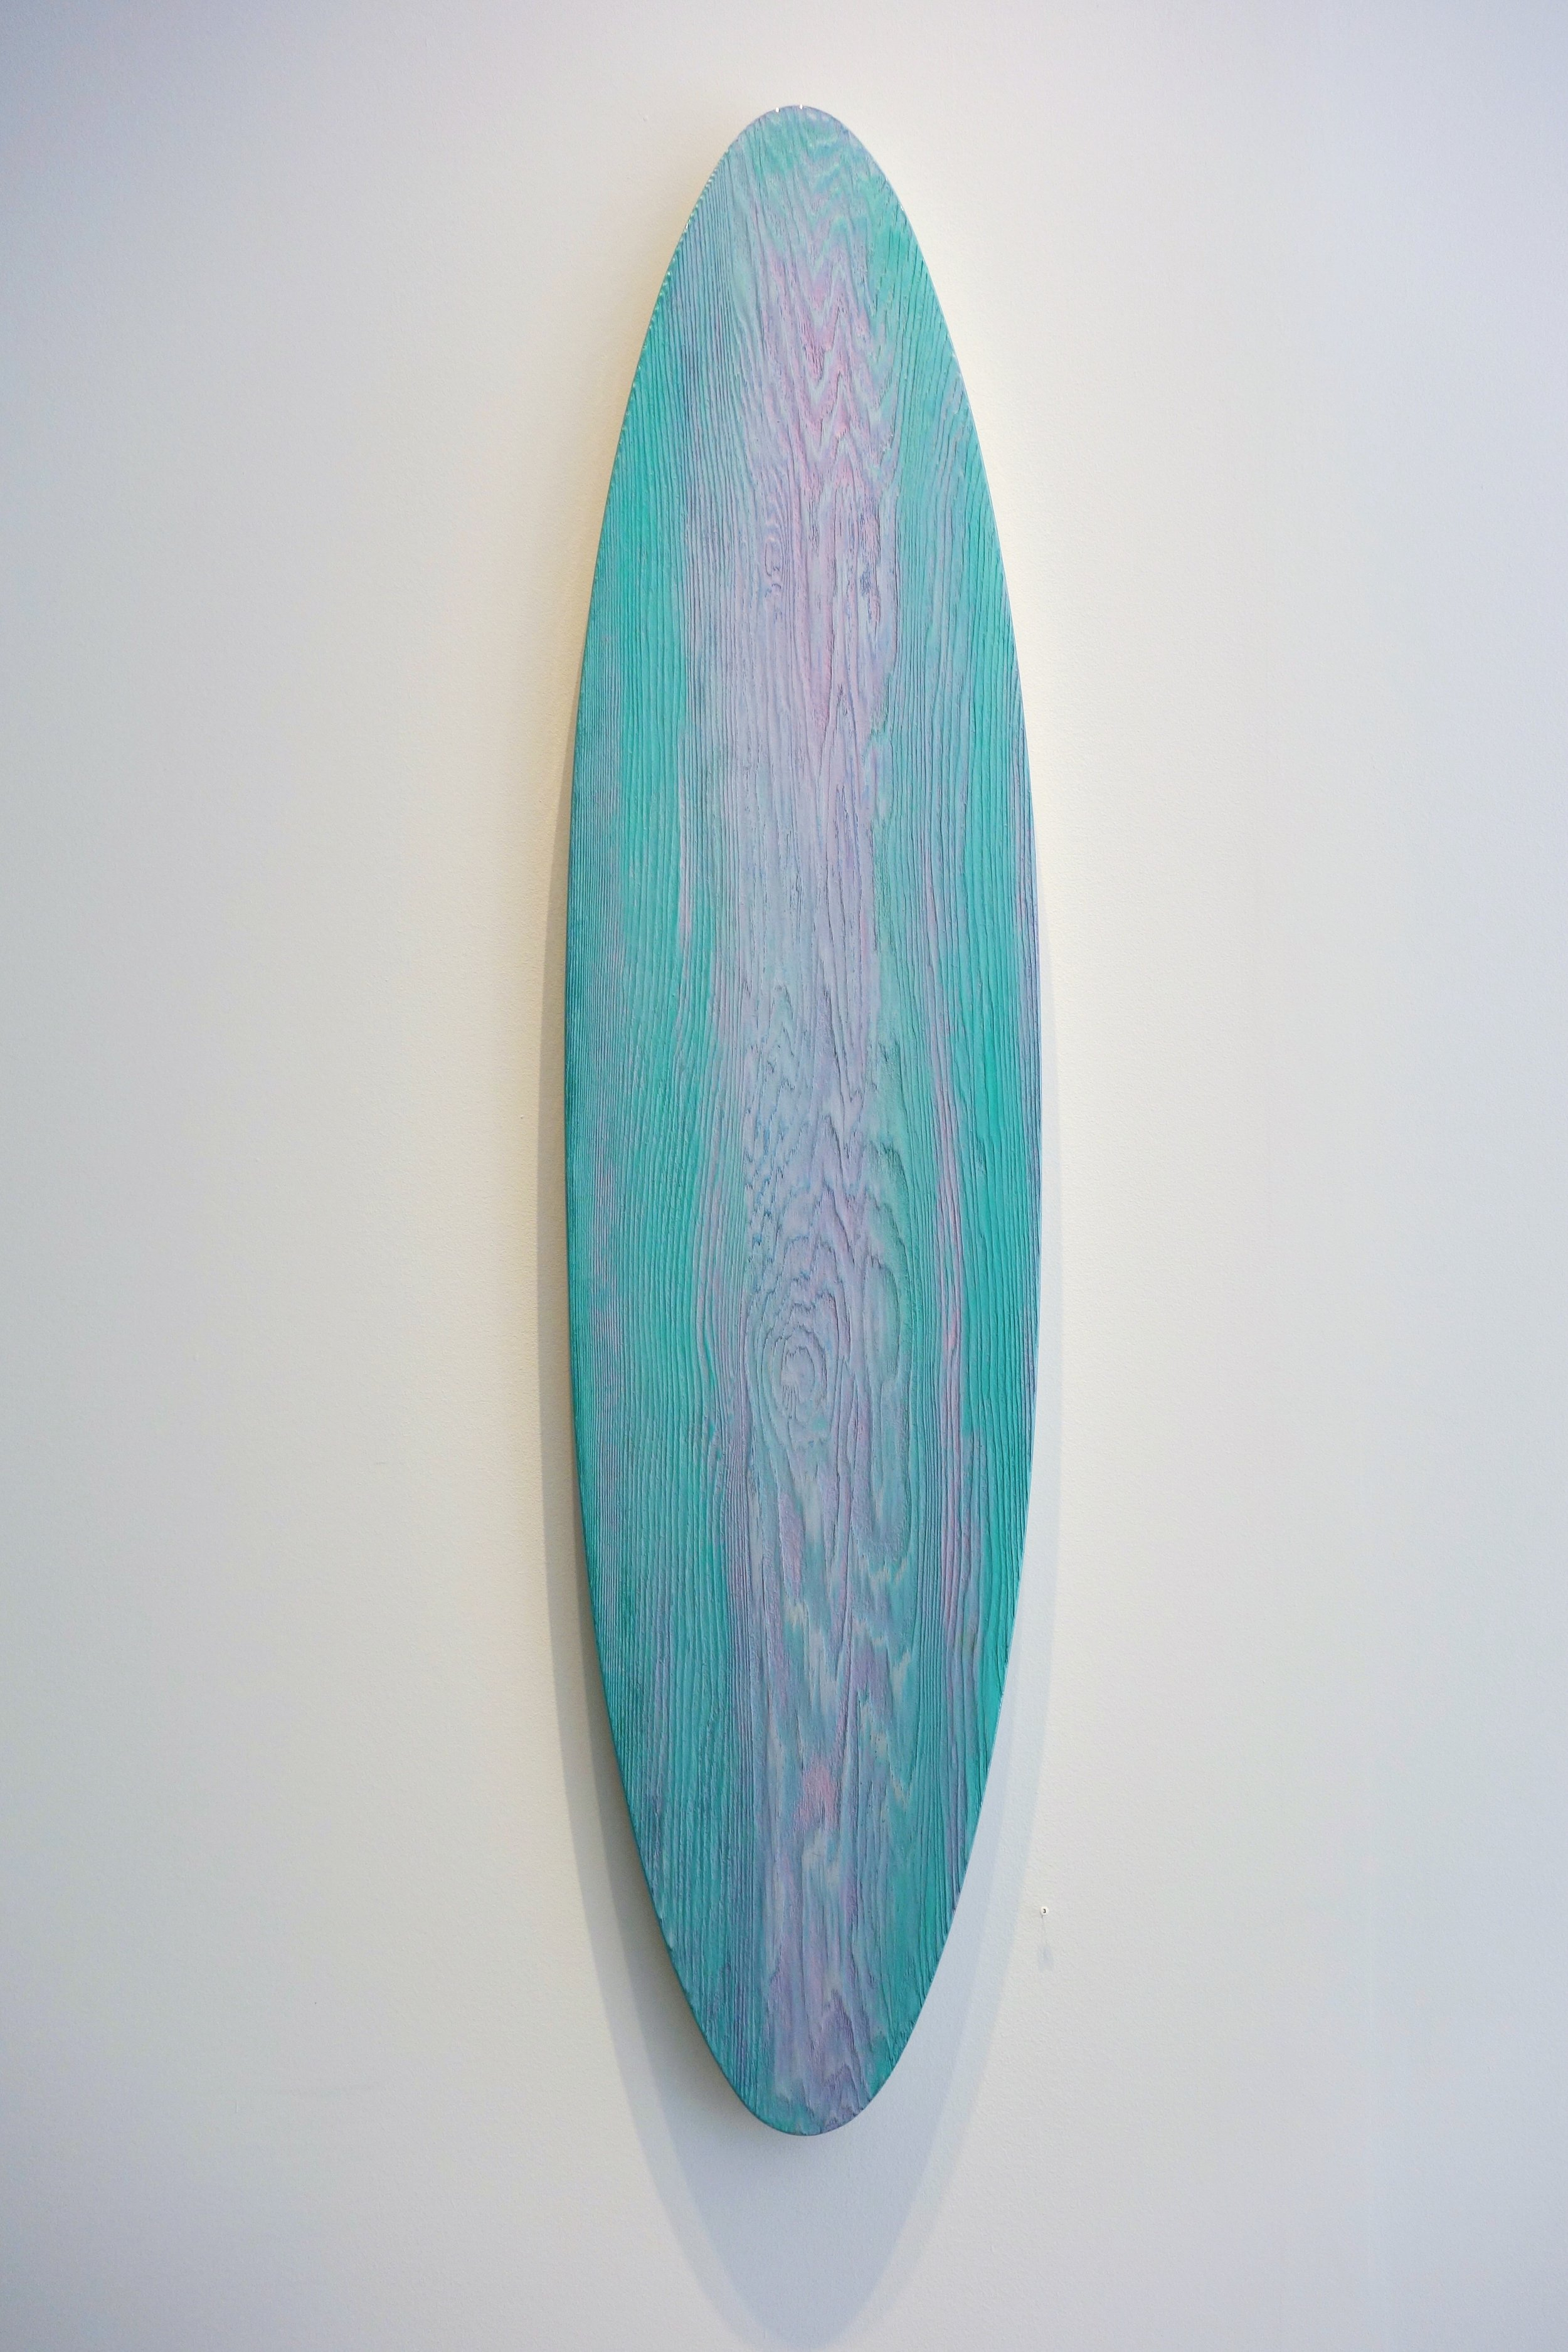 "Justen Ladda, pink and green mirror, 2017, 46"" x 11"", mixed media on red cedar"